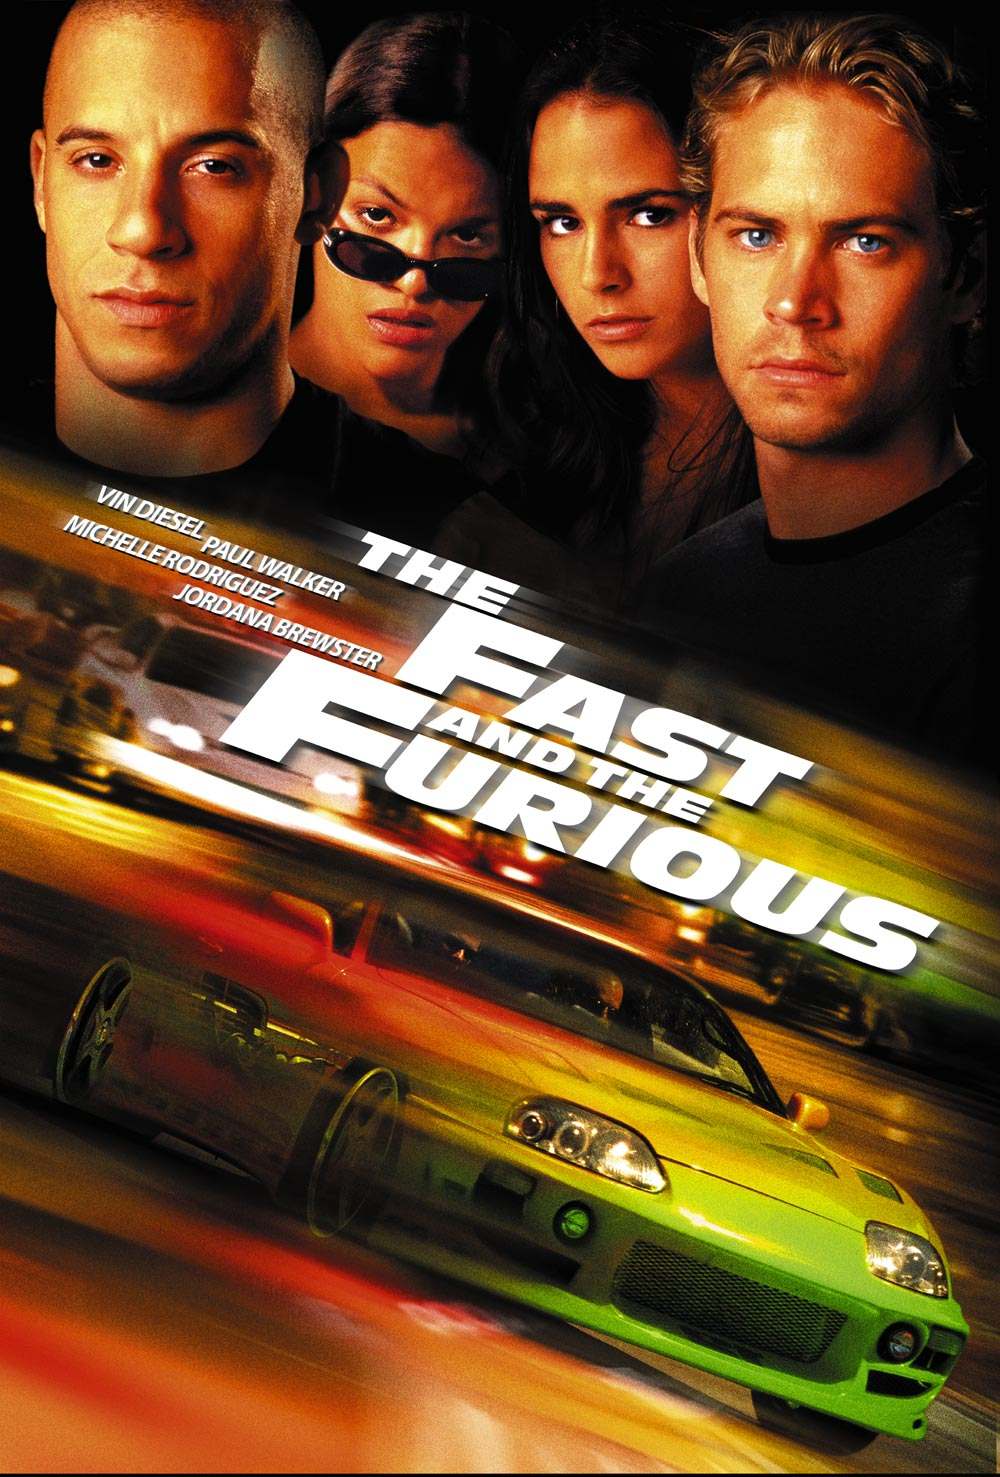 fast track no limits full movie watch online